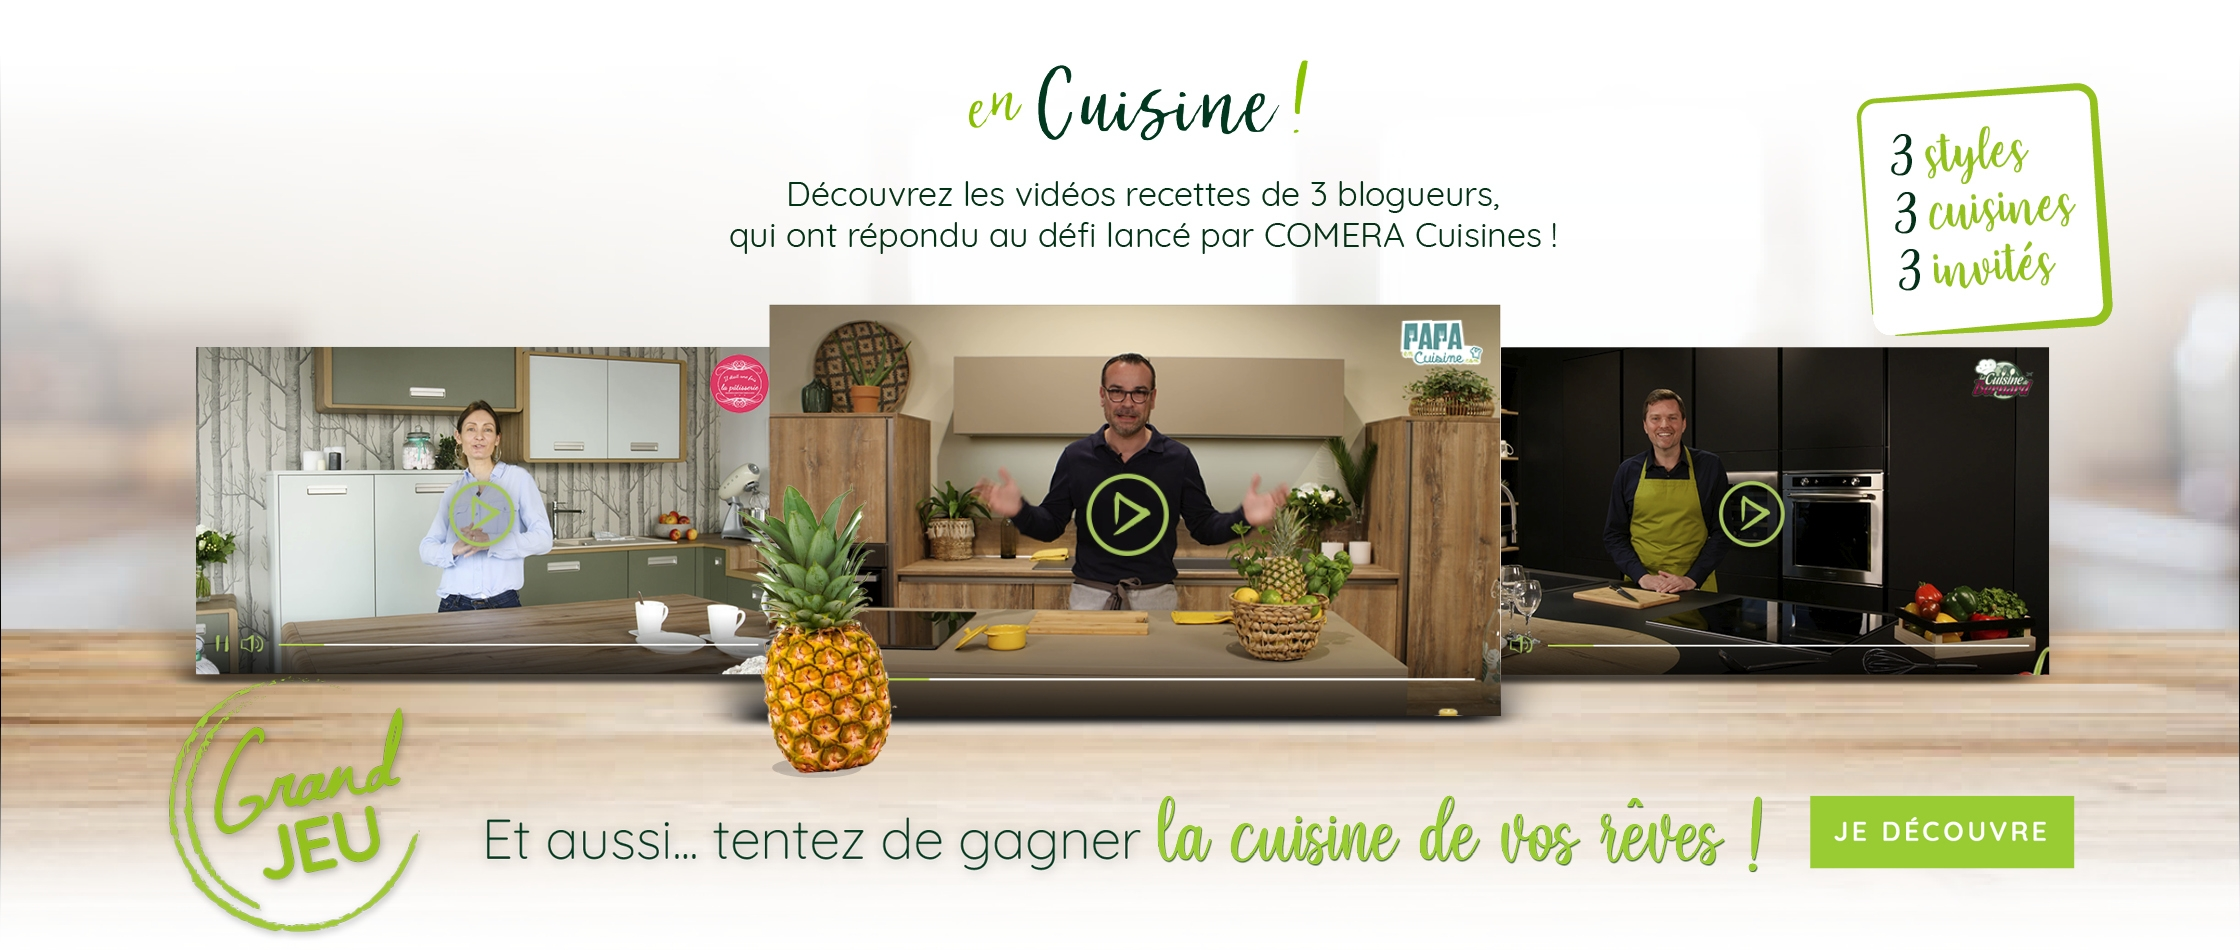 operation-speciale-grand-jeu-videos-blogueurs-comera-cuisines